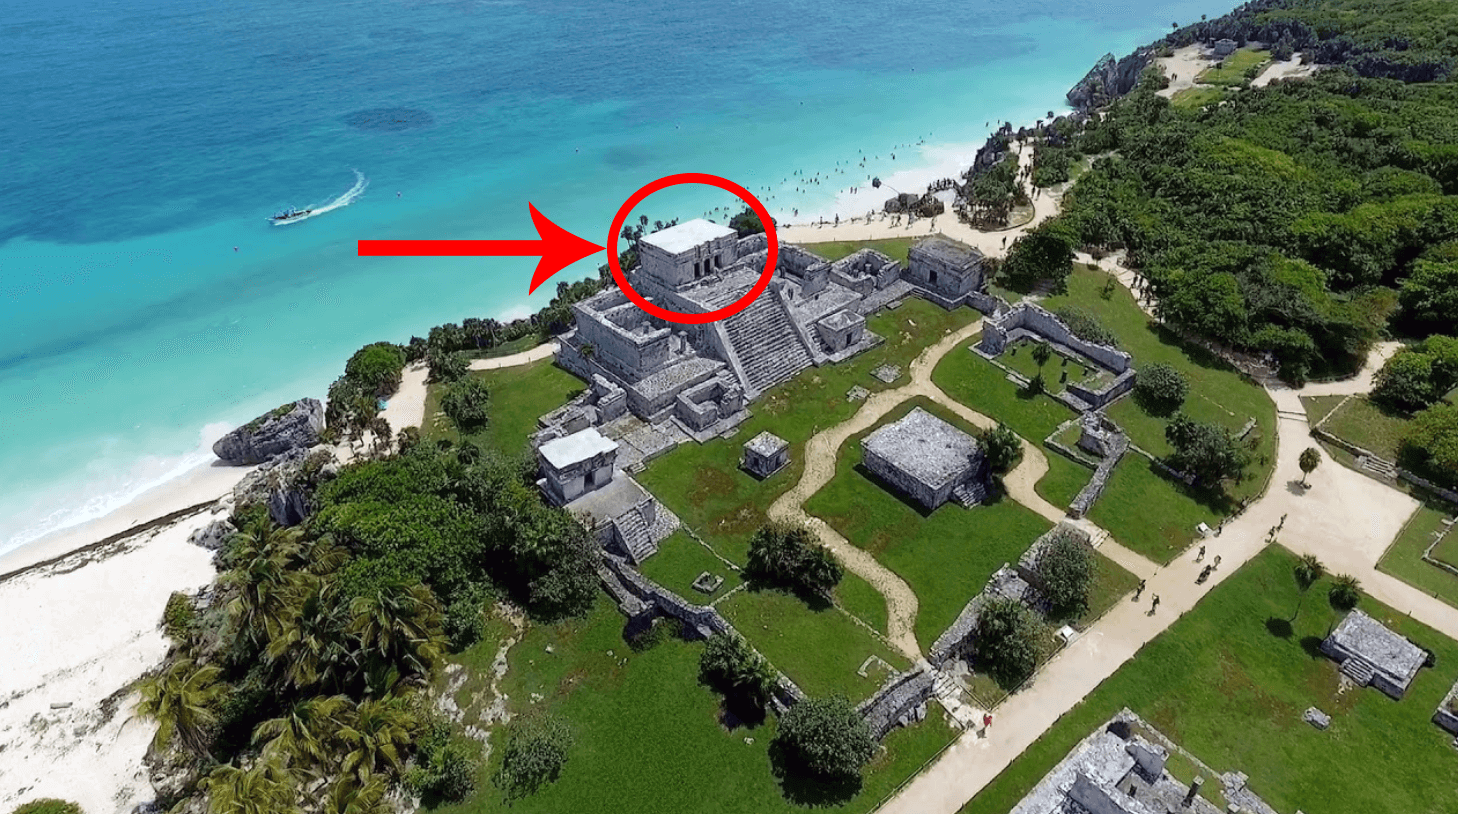 12 Things You Need Know About the Tulum Ruins (2018)